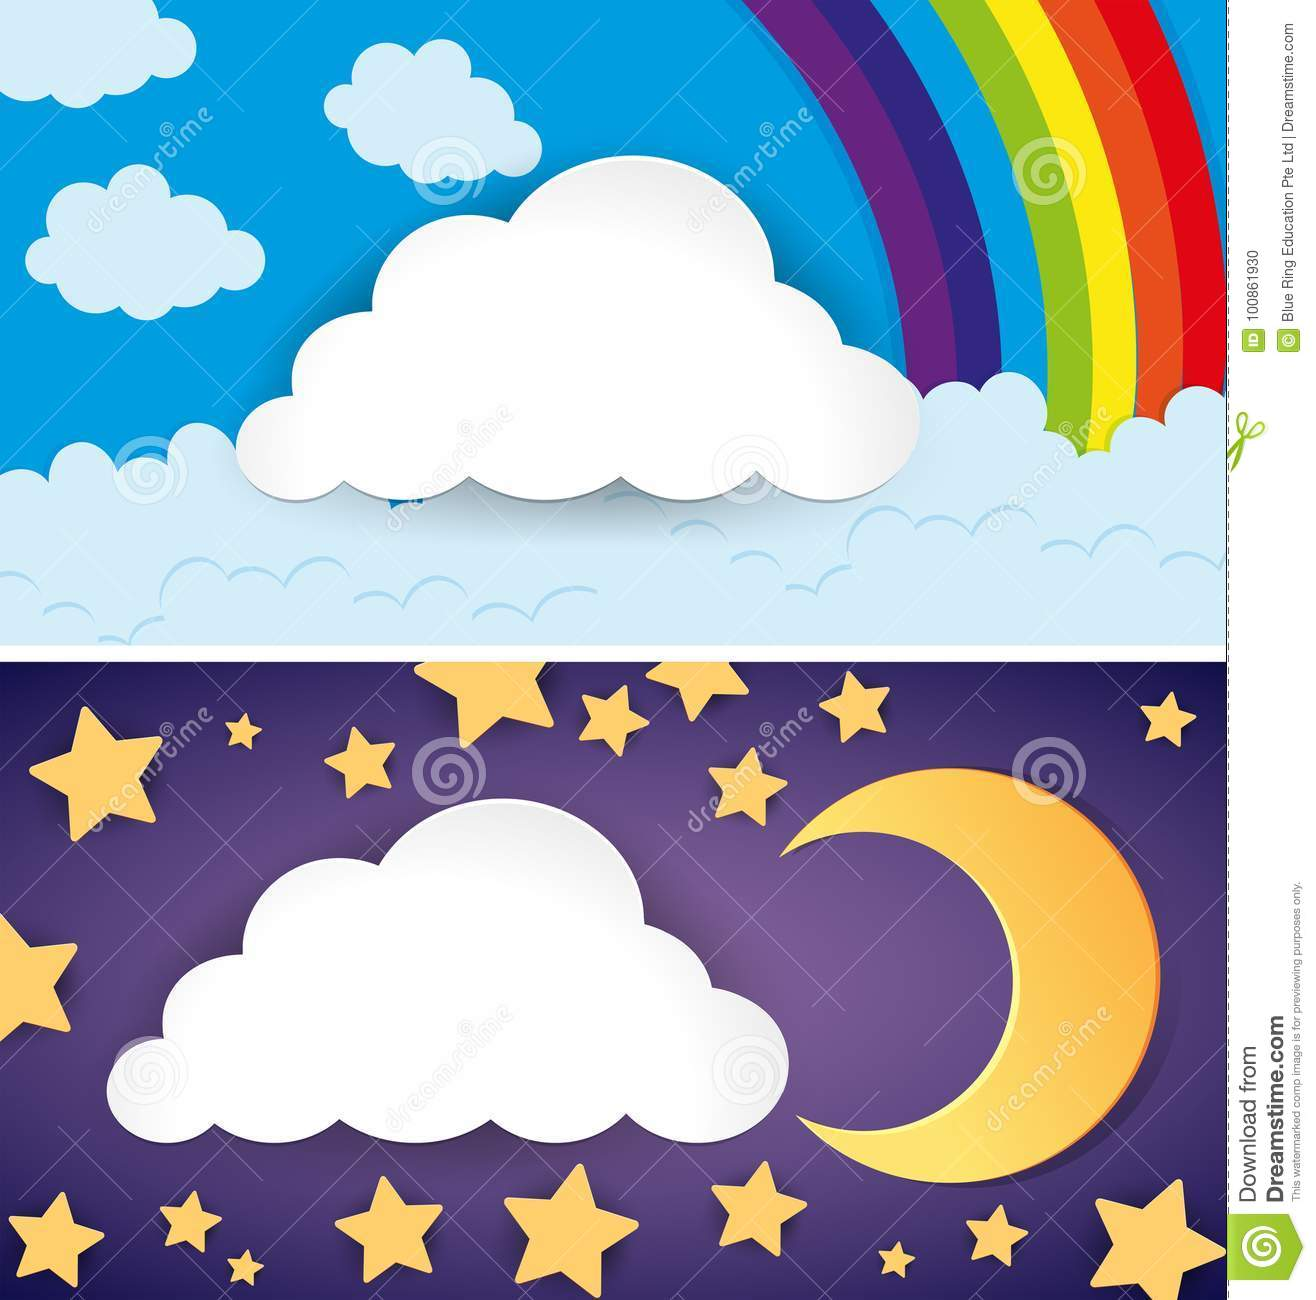 Two Scenes Of Day And Night Stock Vector - Illustration of